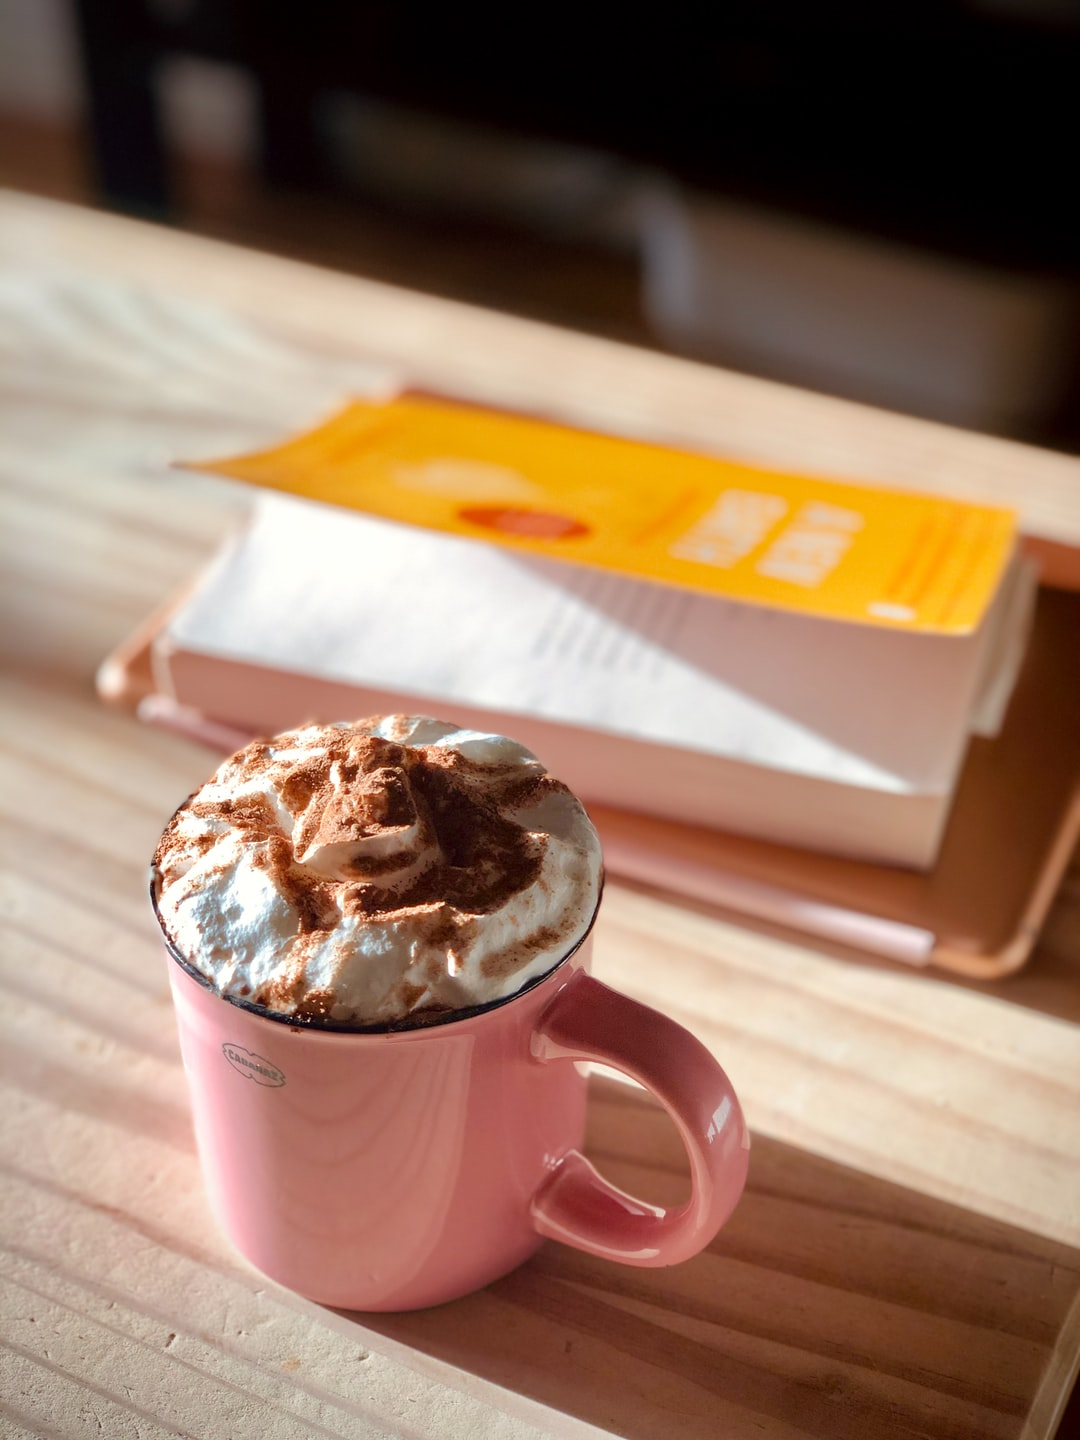 A pink mug of hot chocolate with cream and chocolate powder dusting.